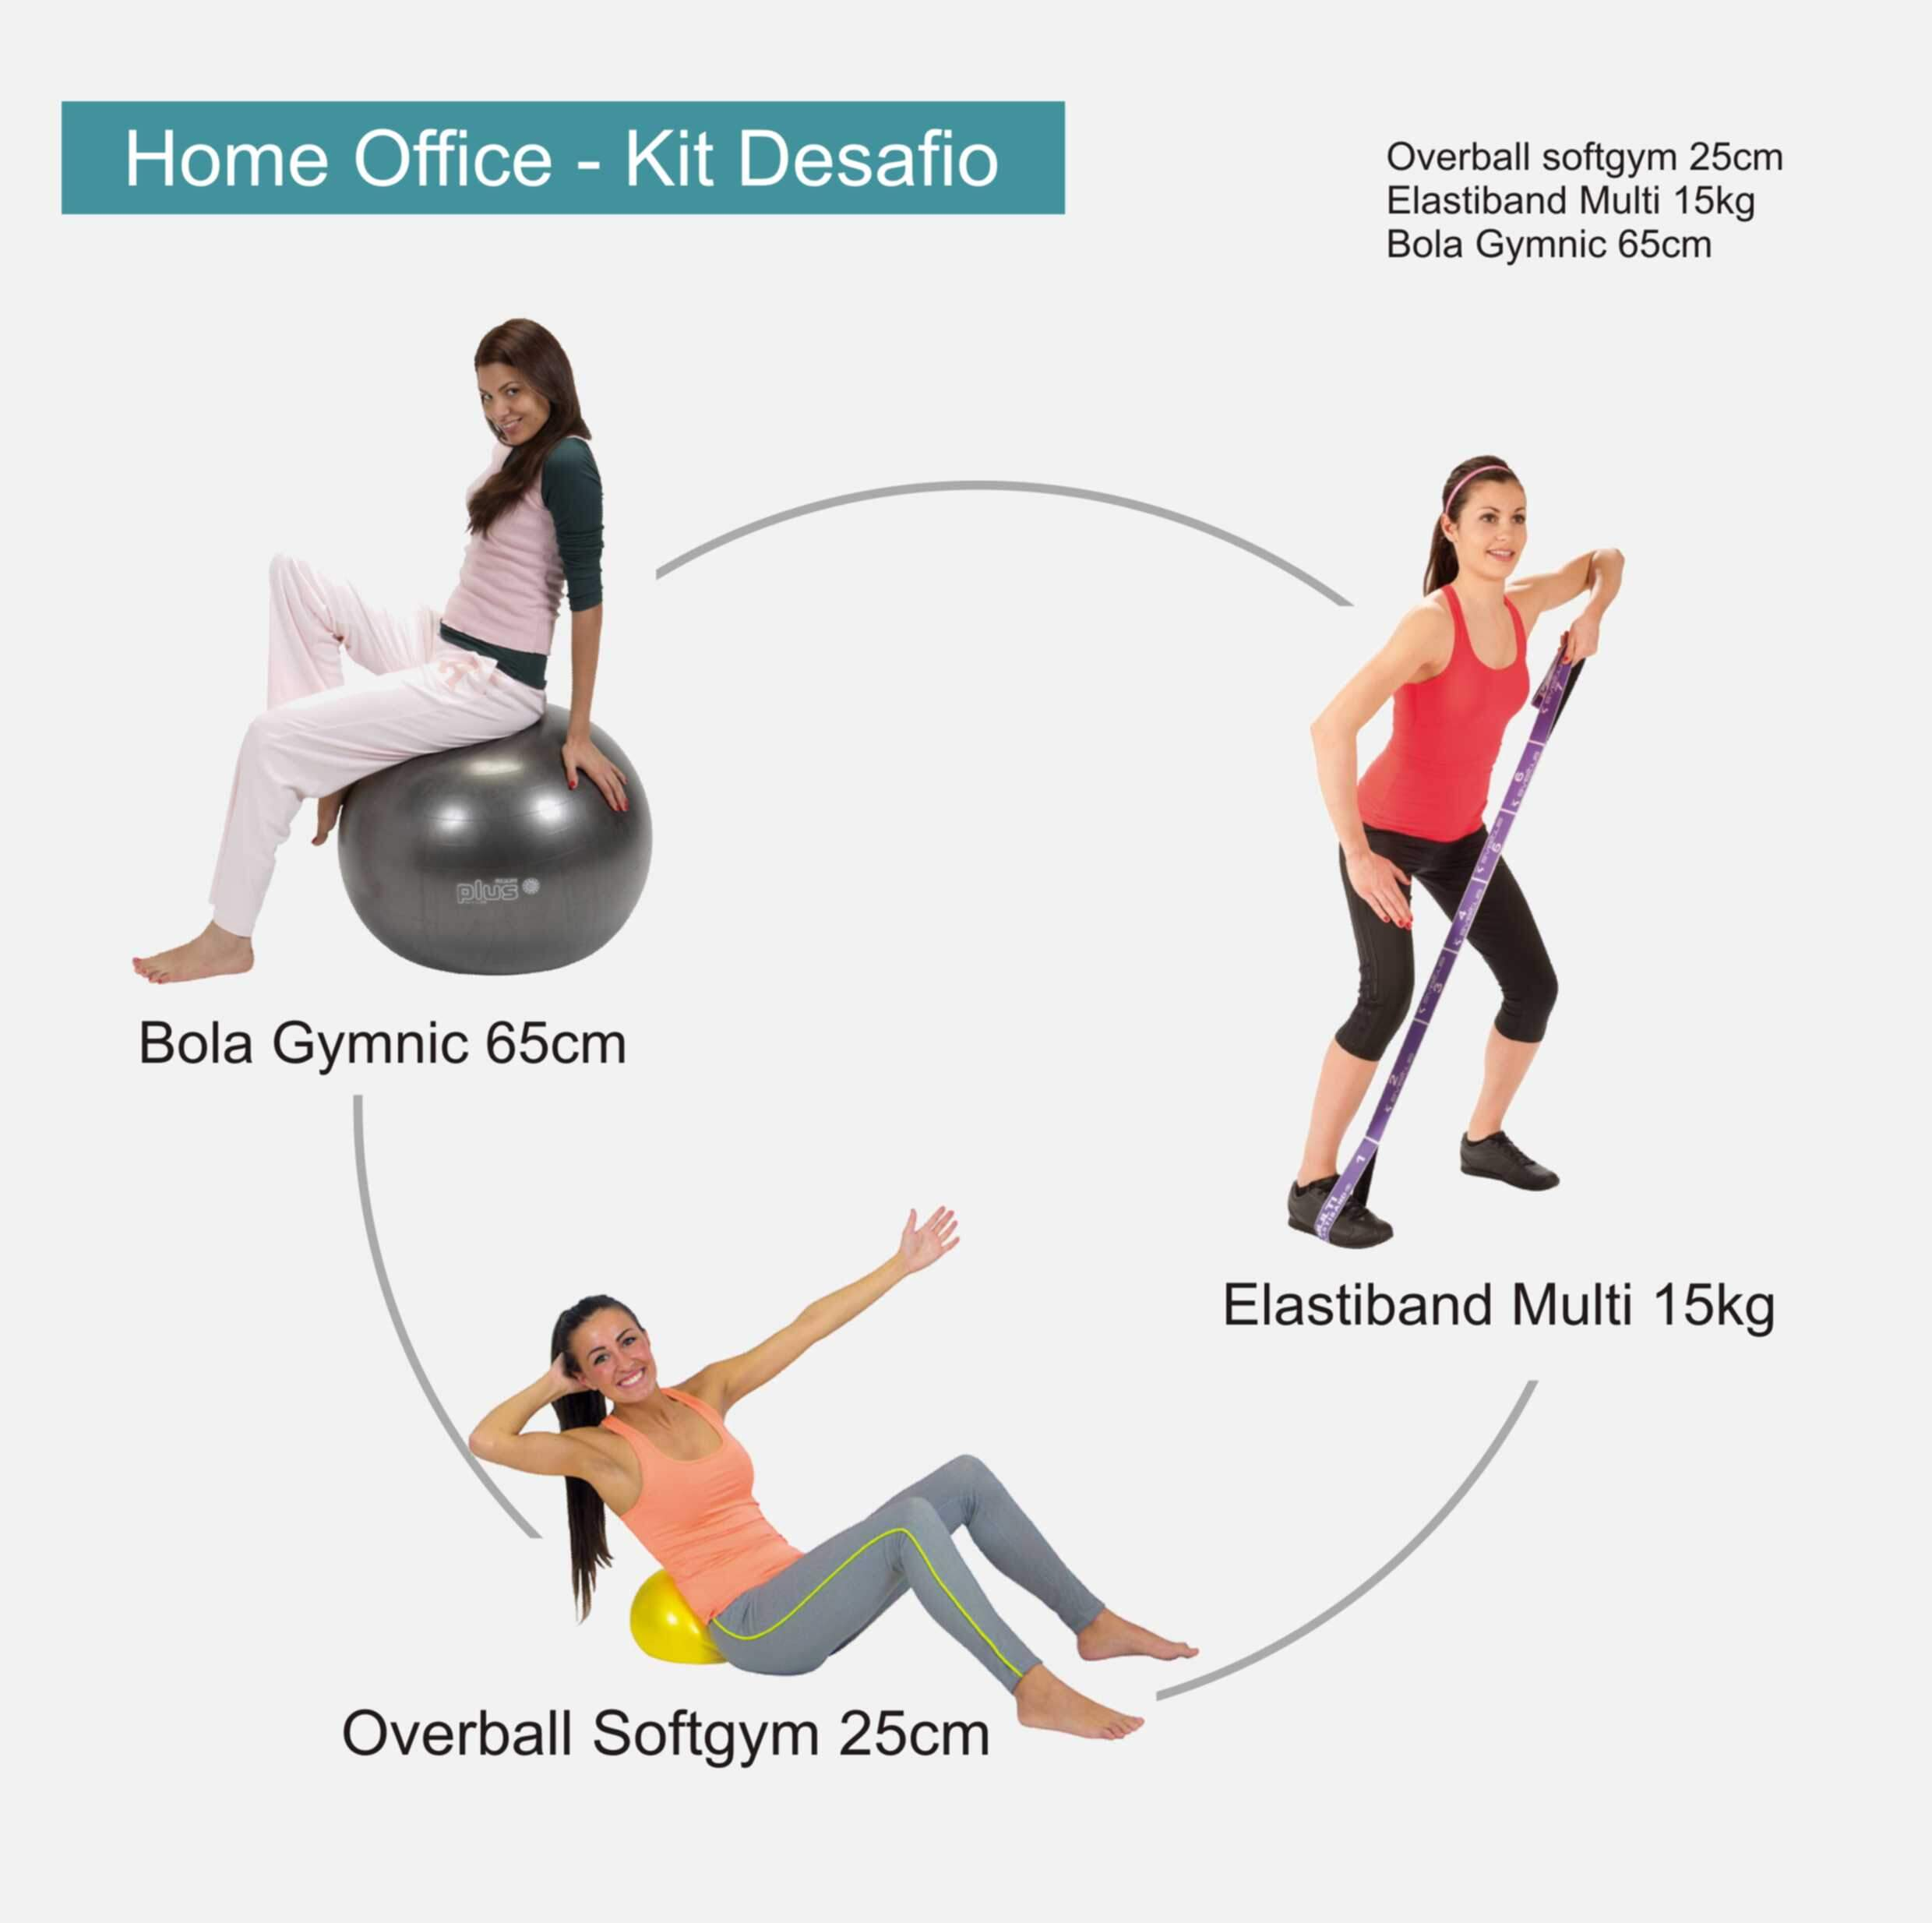 Home Office kit Desafio